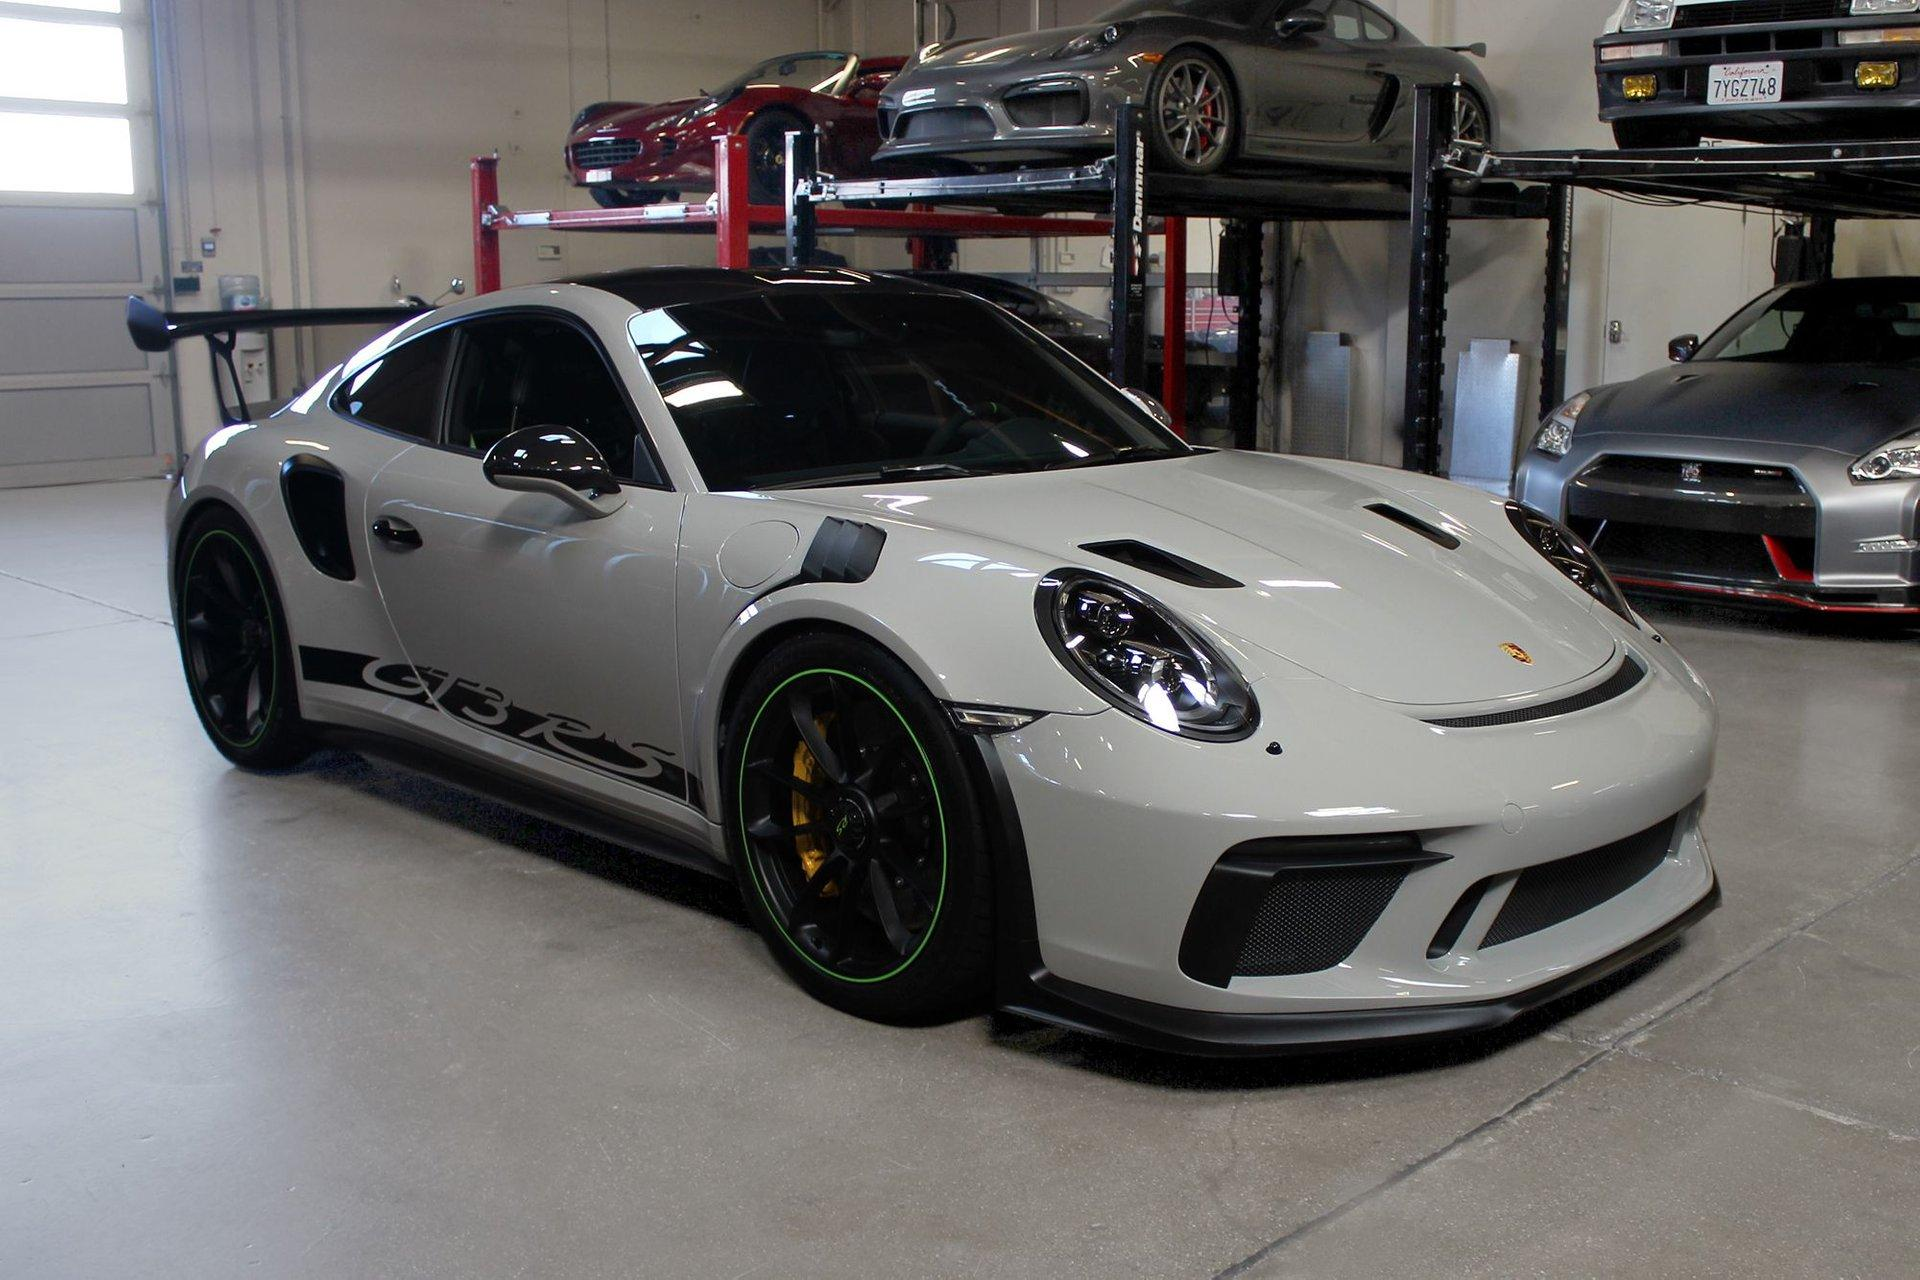 Used 2019 Porsche 911 Gt3 Rs For Sale 209 995 San Francisco Sports Cars Stock C19086